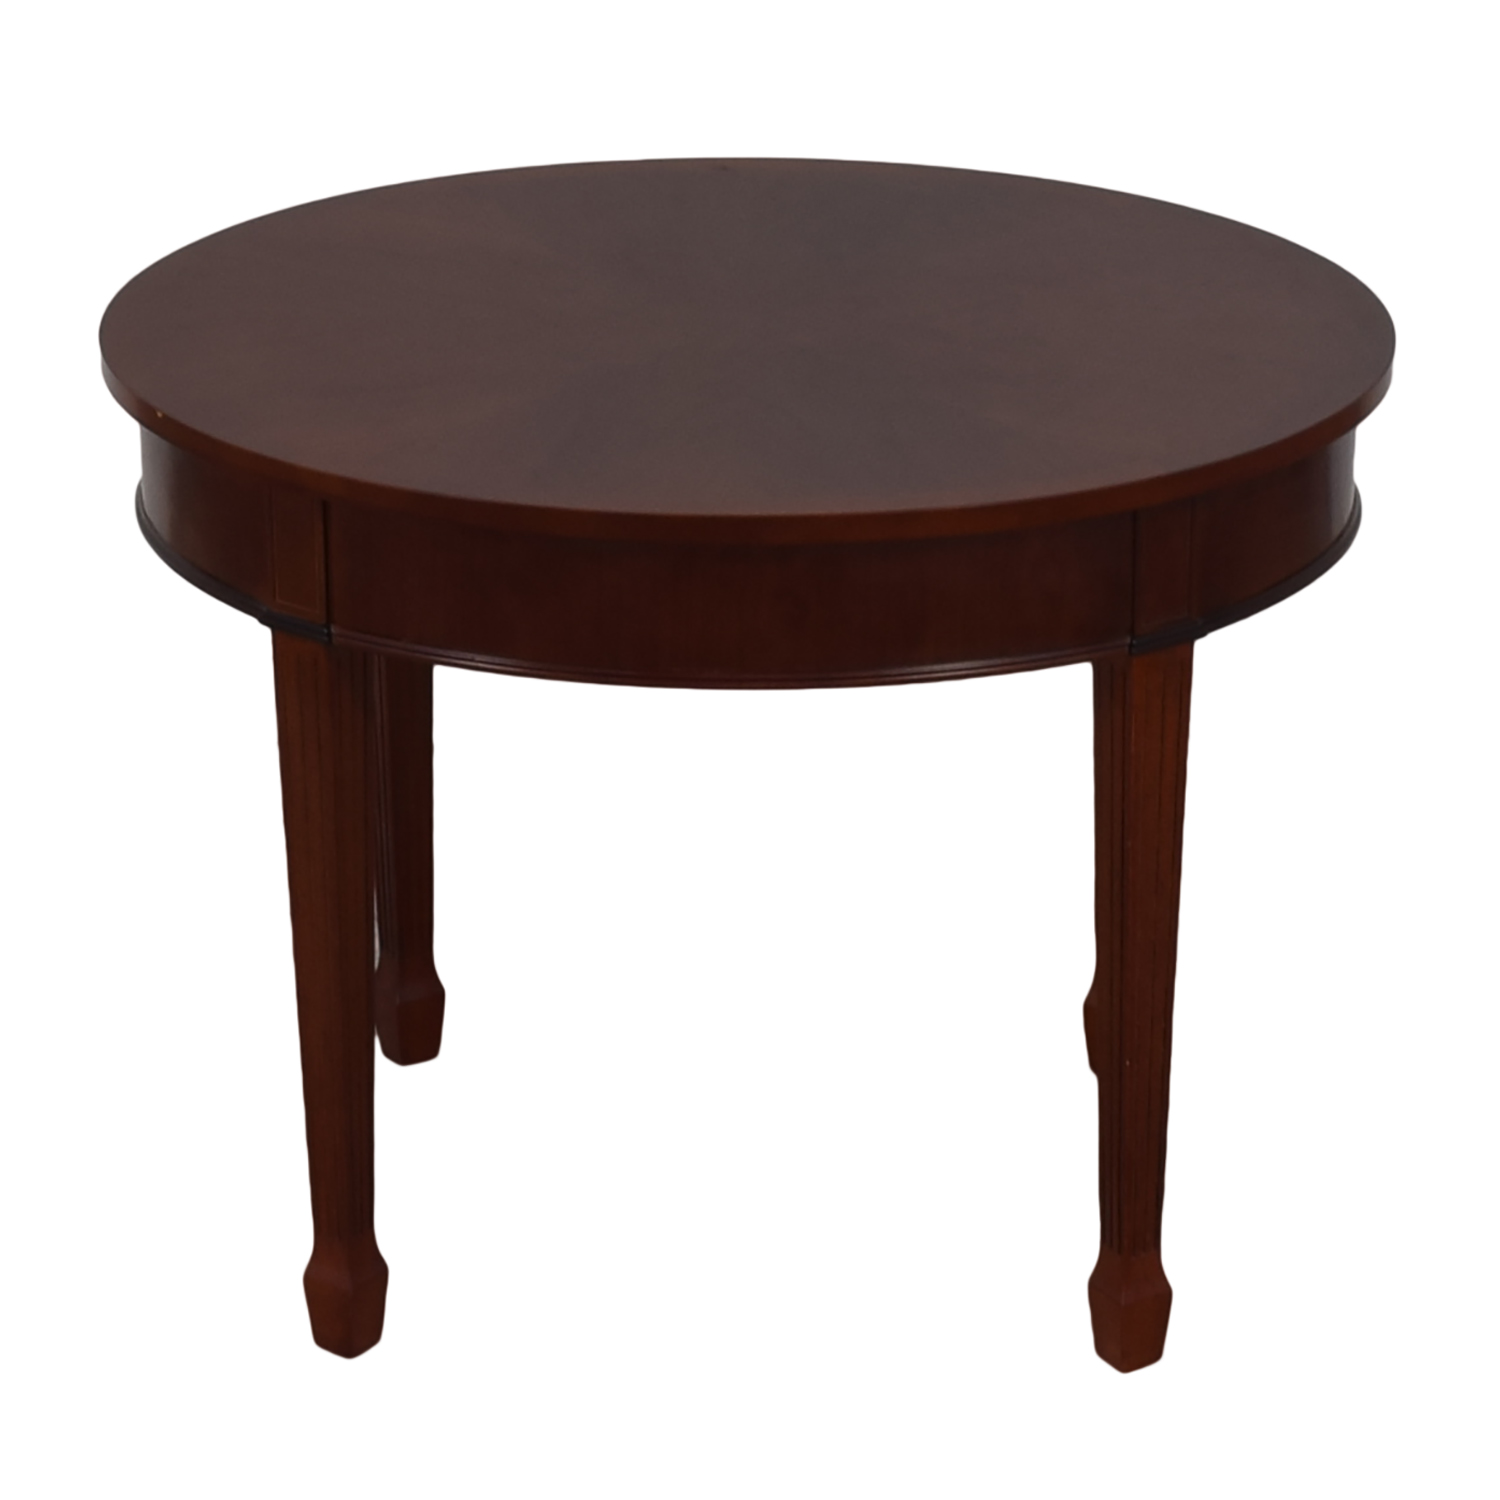 Bombay Company Cherry Wood Oval Table / Sofas